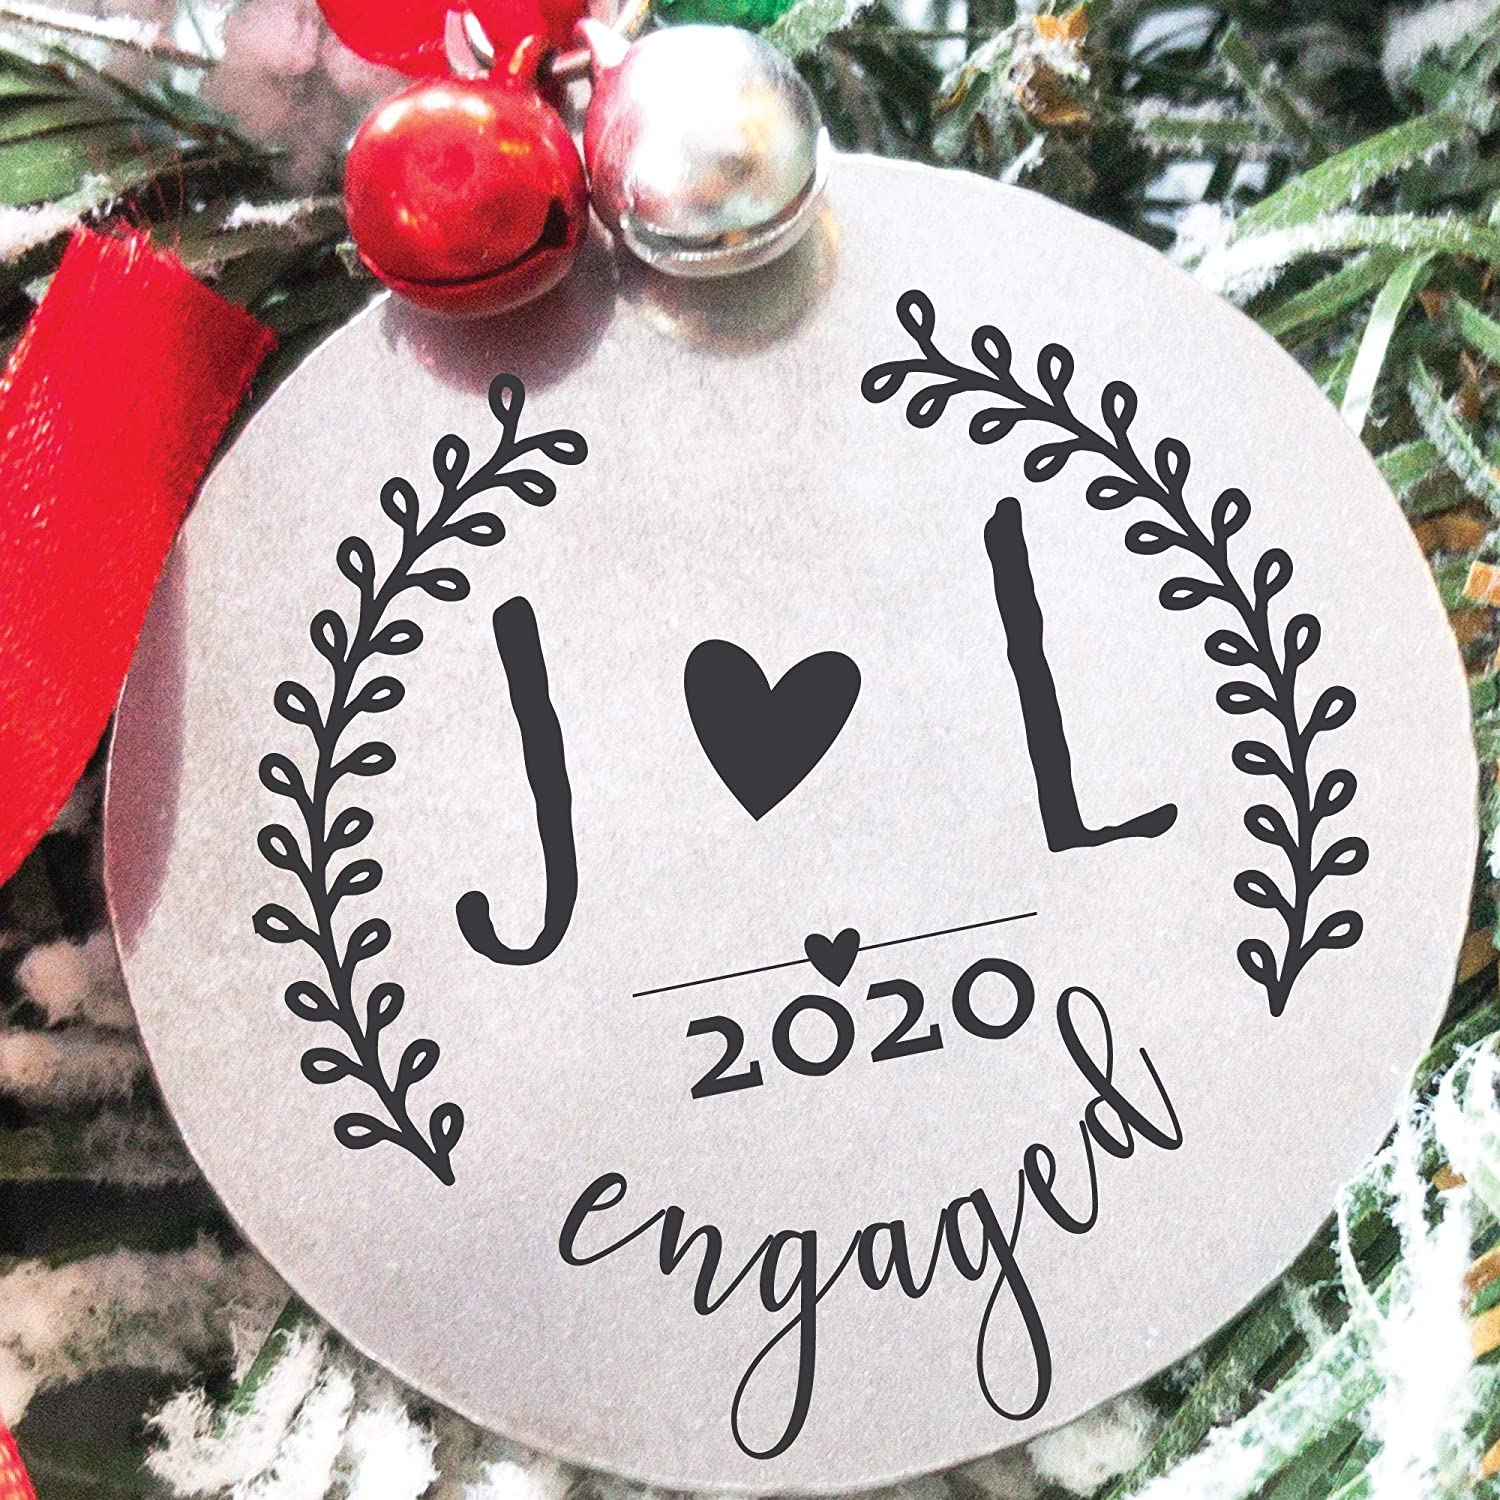 2020 Feince Christmas Gifts Amazon.com: Personalized Engaged 2020 Christmas Ornament 2020